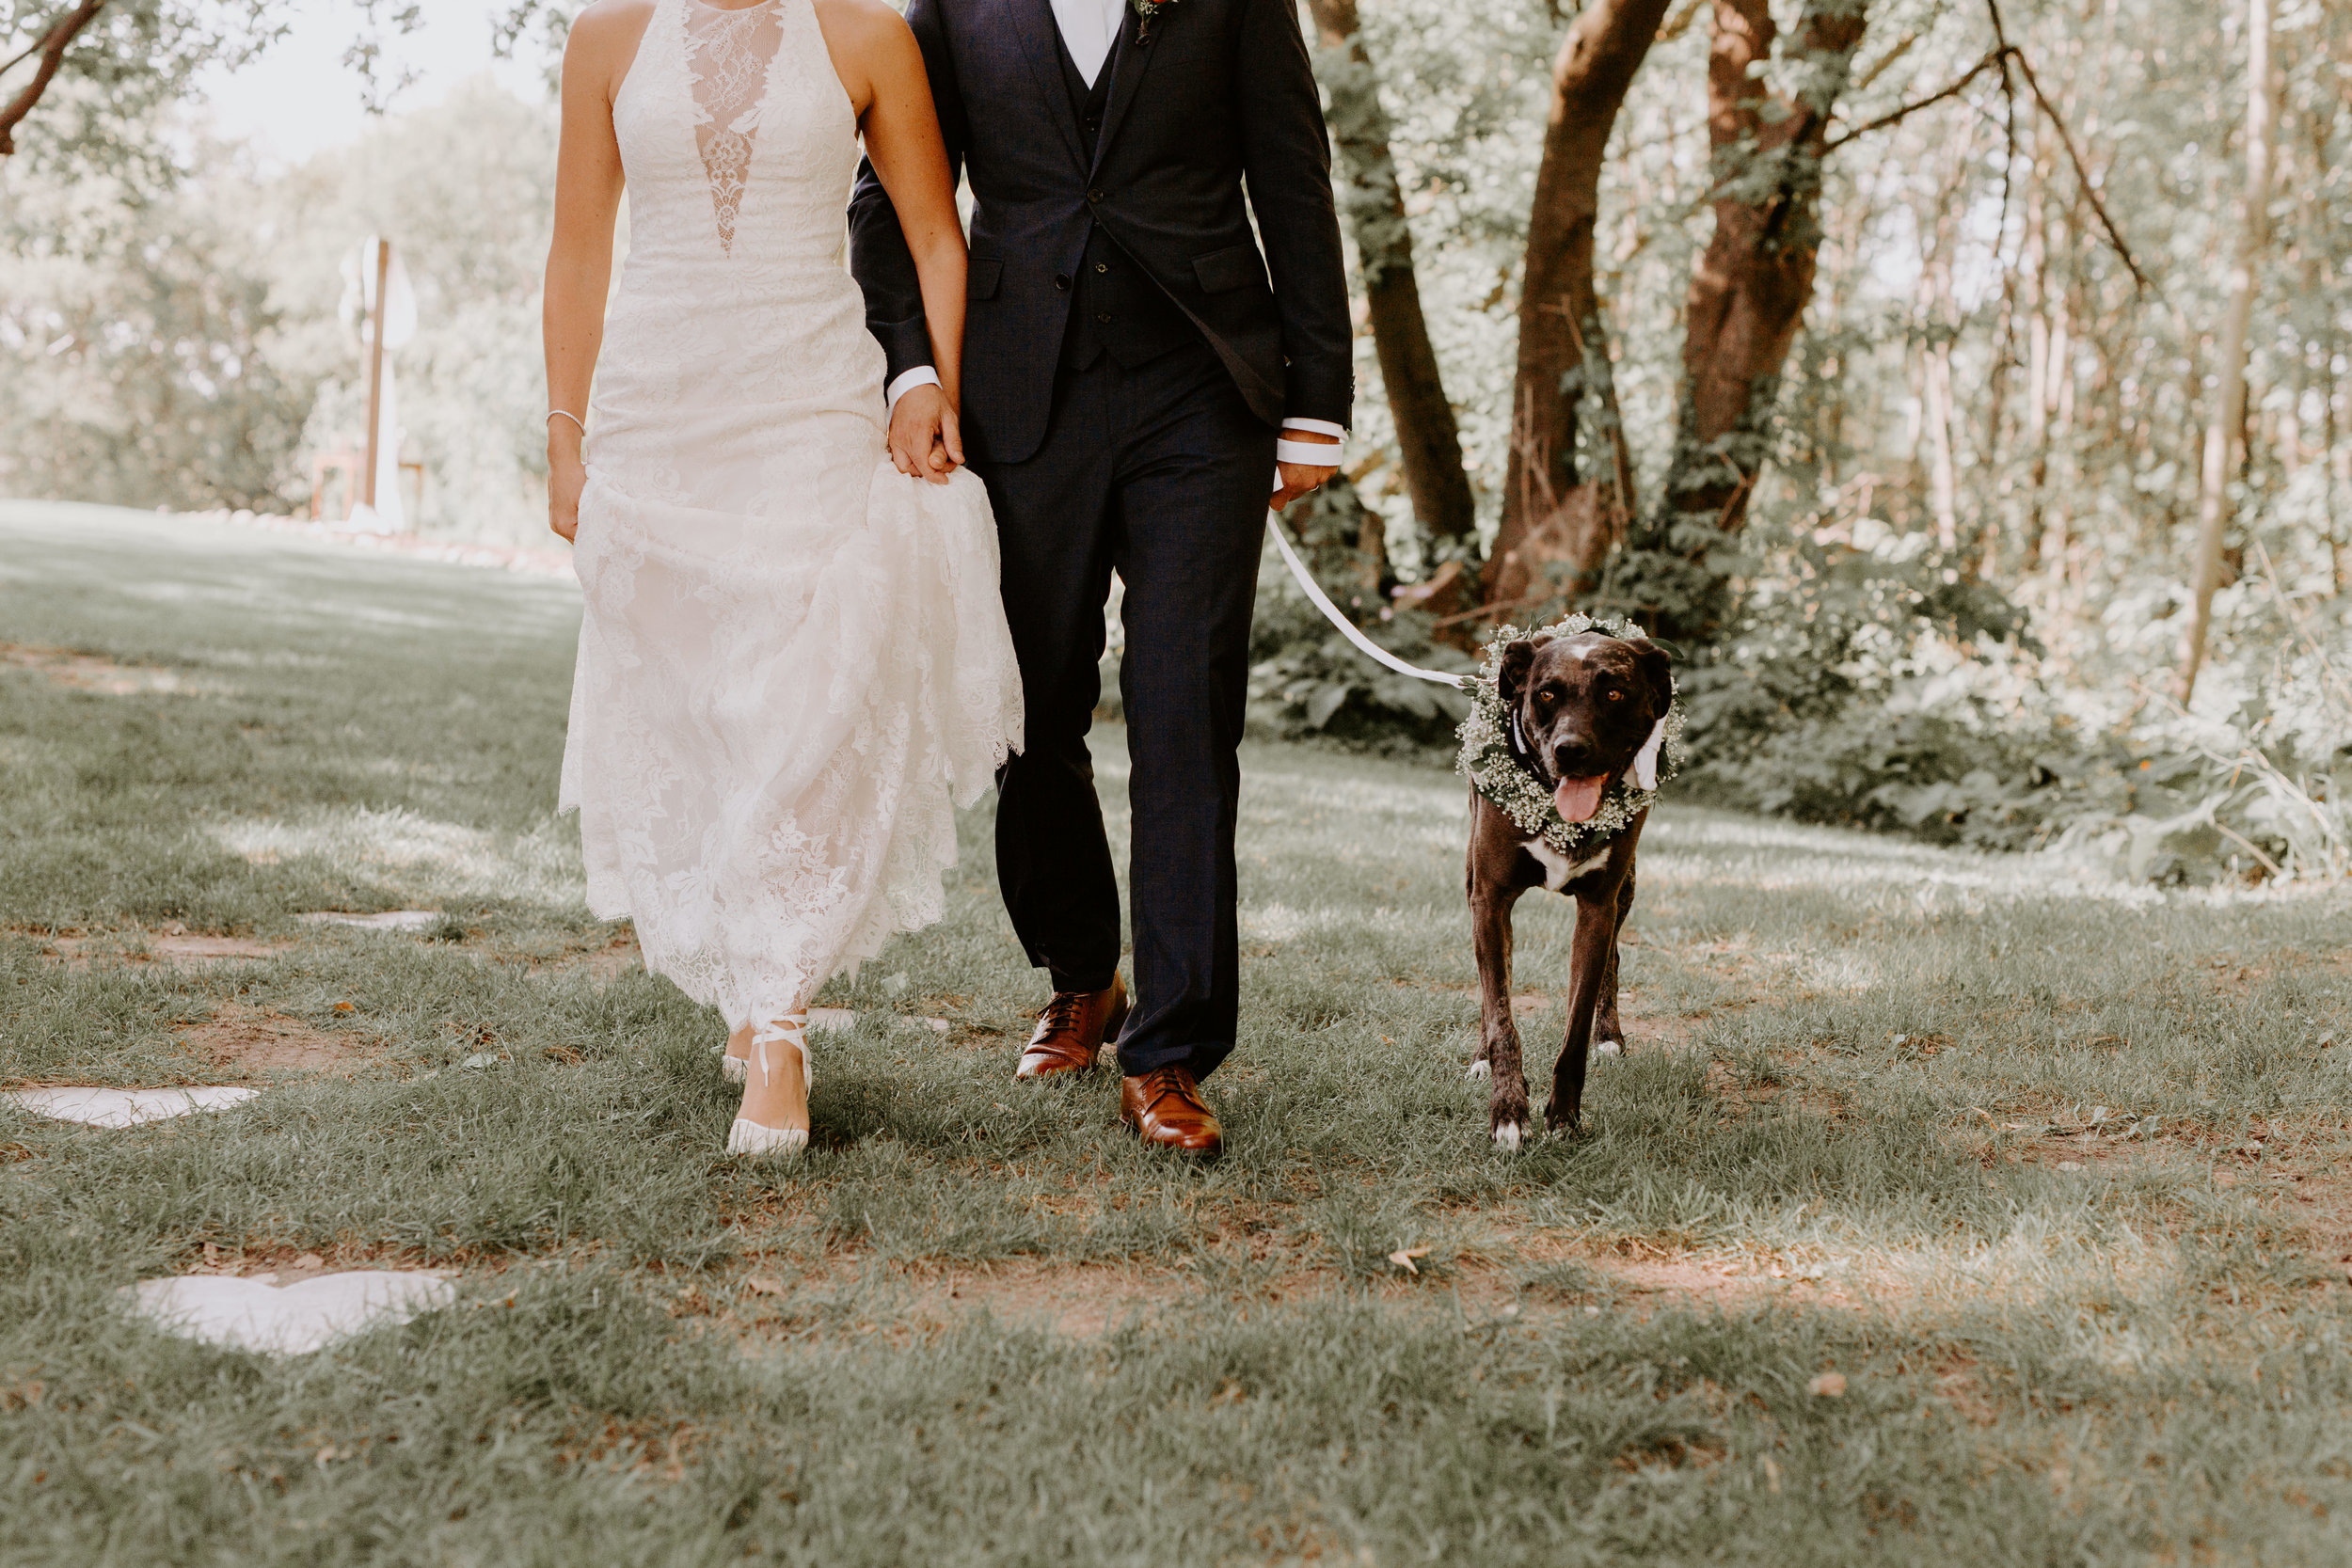 Photo Credit: Kate Becker Photography (image provided by Doggy Social MN)